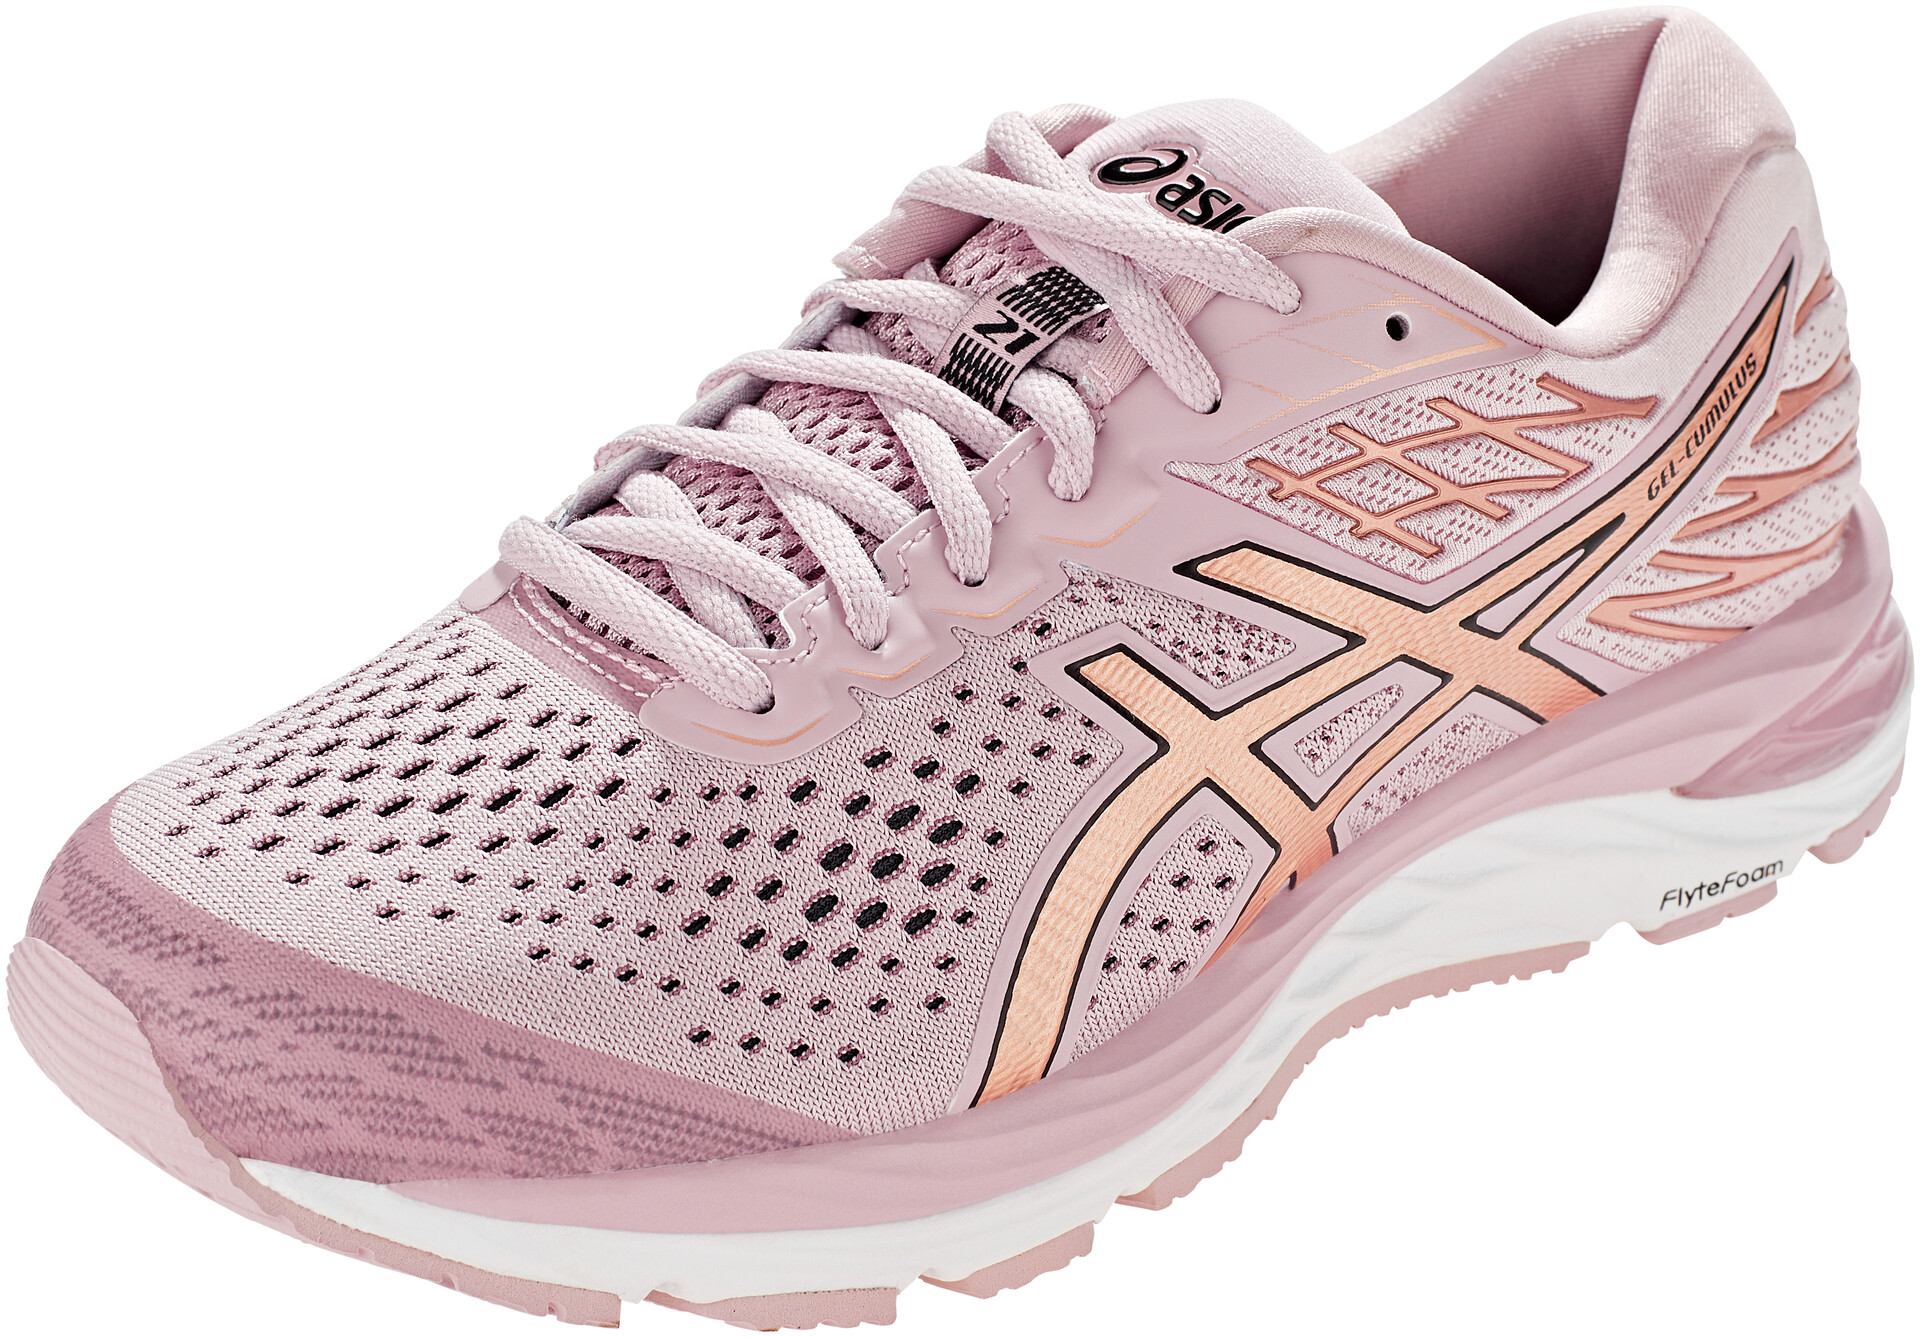 asics Gel-Cumulus 21 Schuhe Damen watershed rose/rose gold